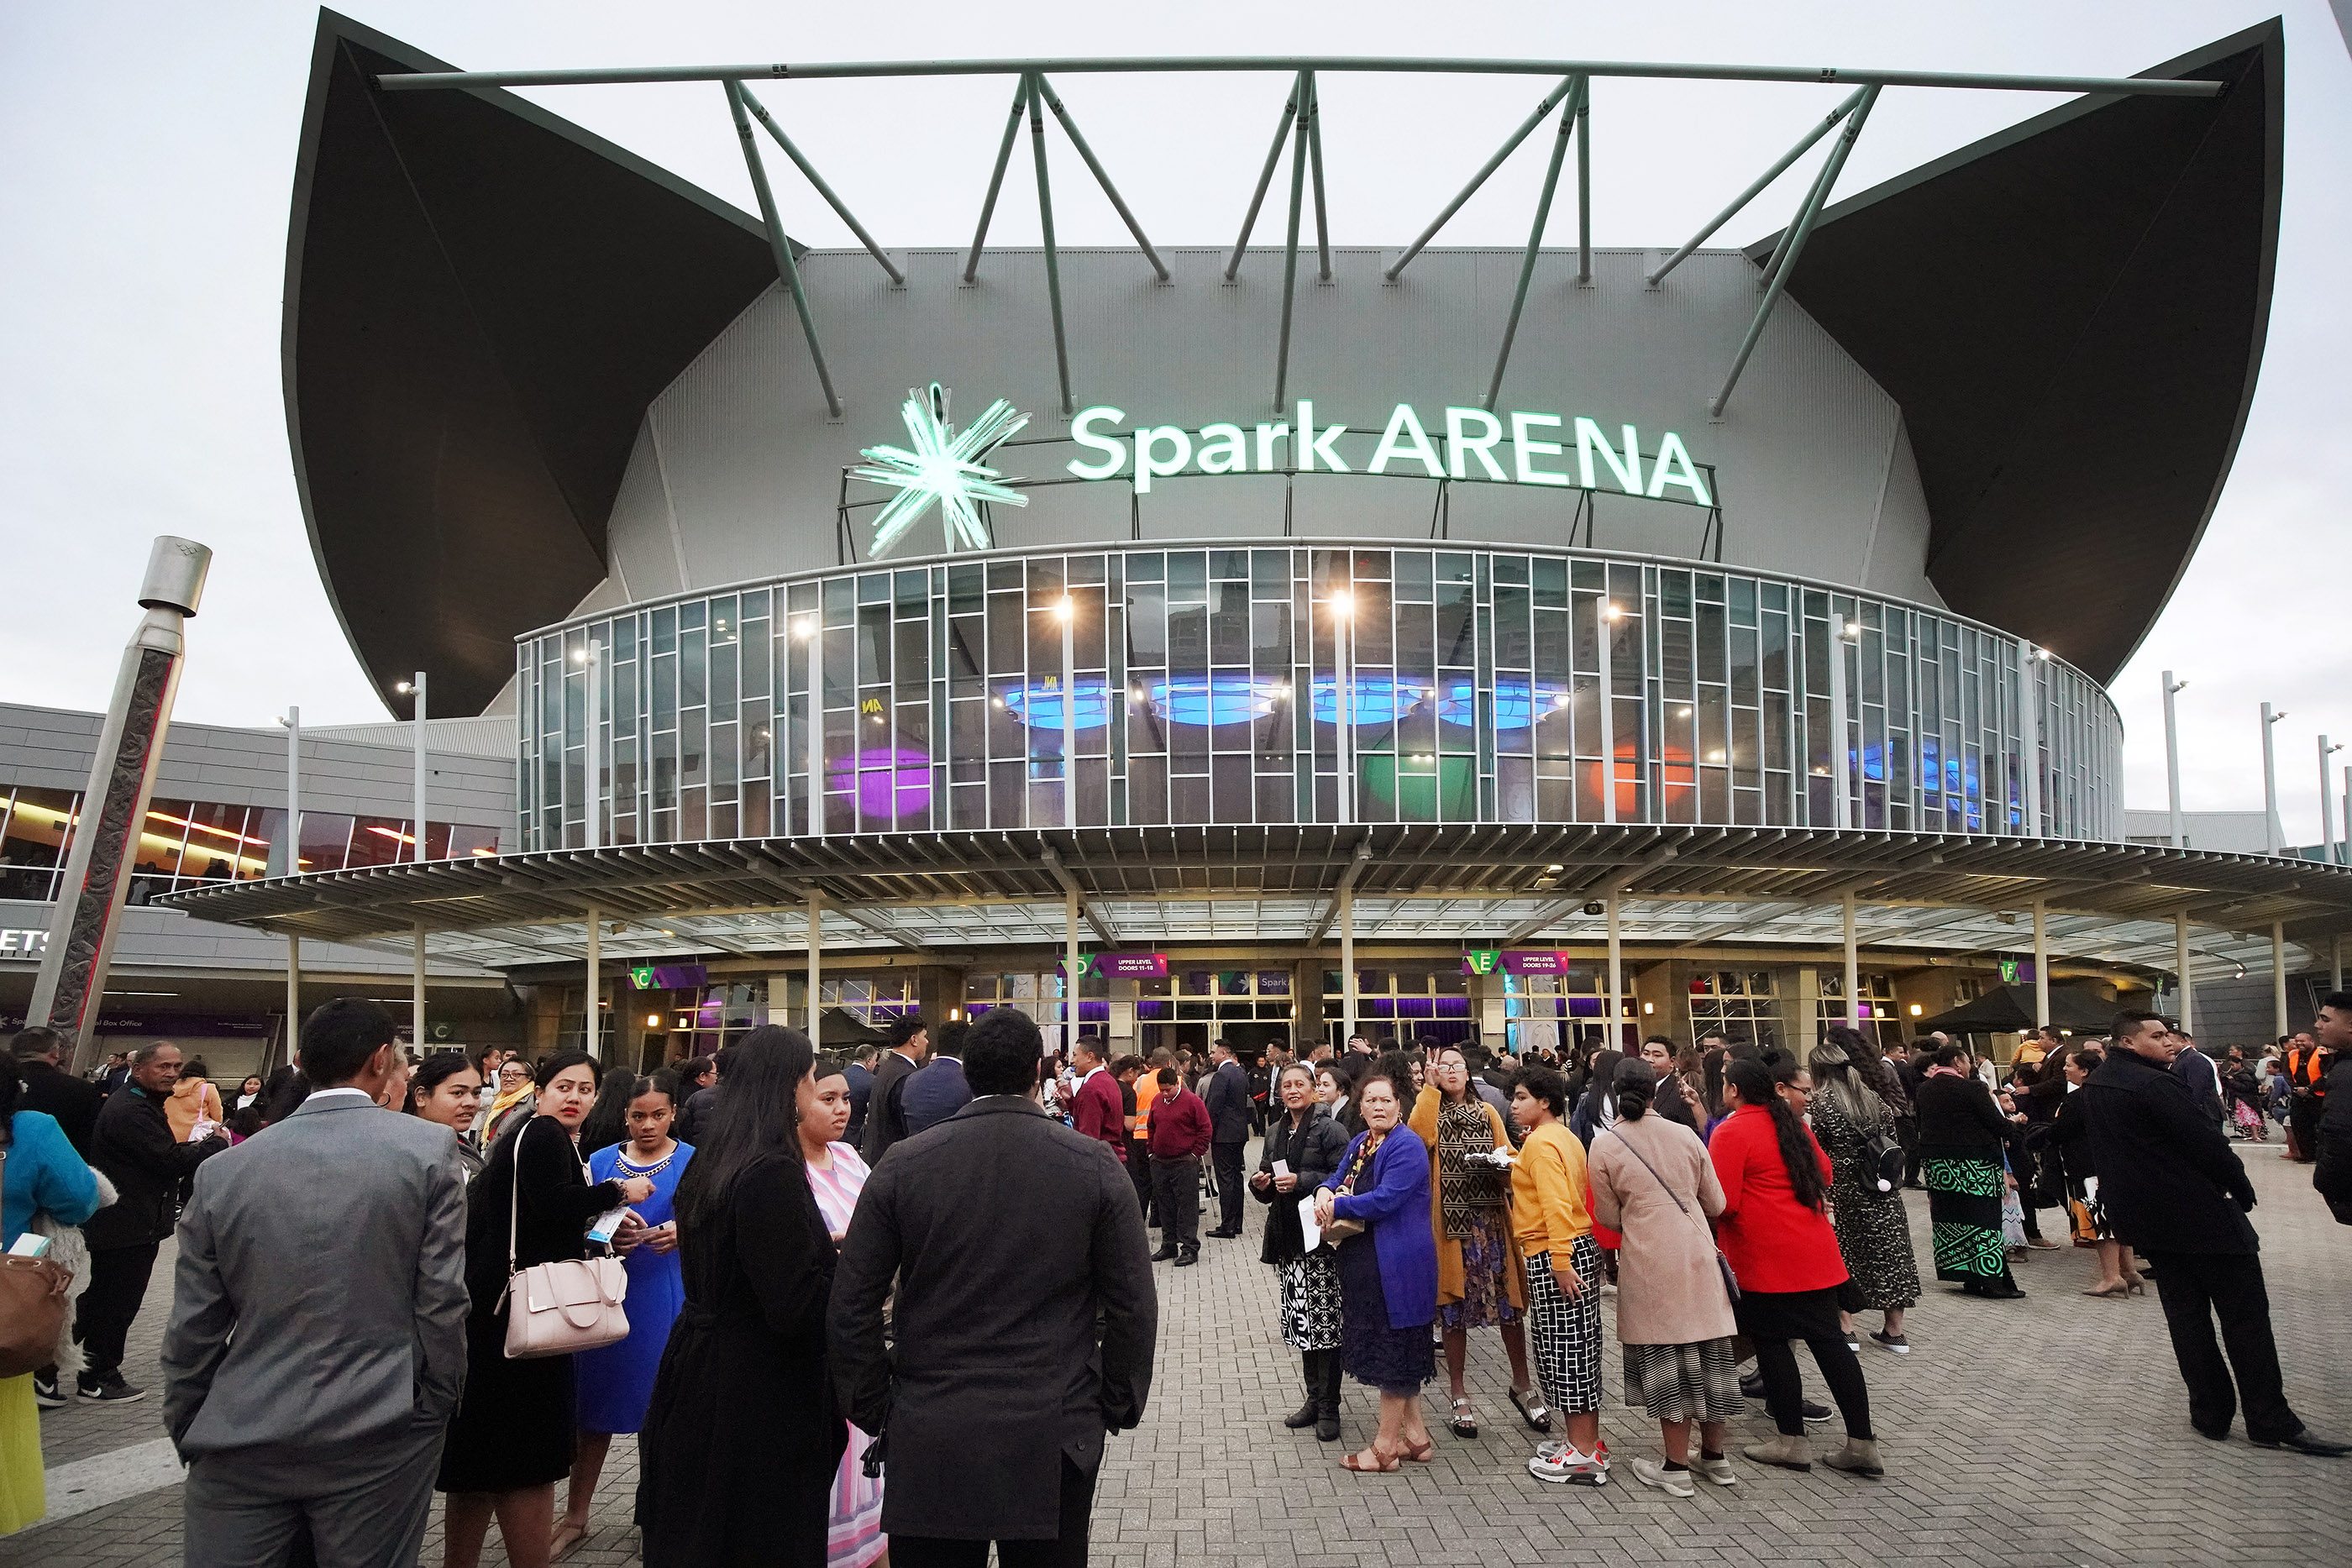 Attendees enter the Spark Arena prior to a devotional with President Russell M. Nelson of The Church of Jesus Christ of Latter-day Saints in Auckland, New Zealand, on May 21, 2019.